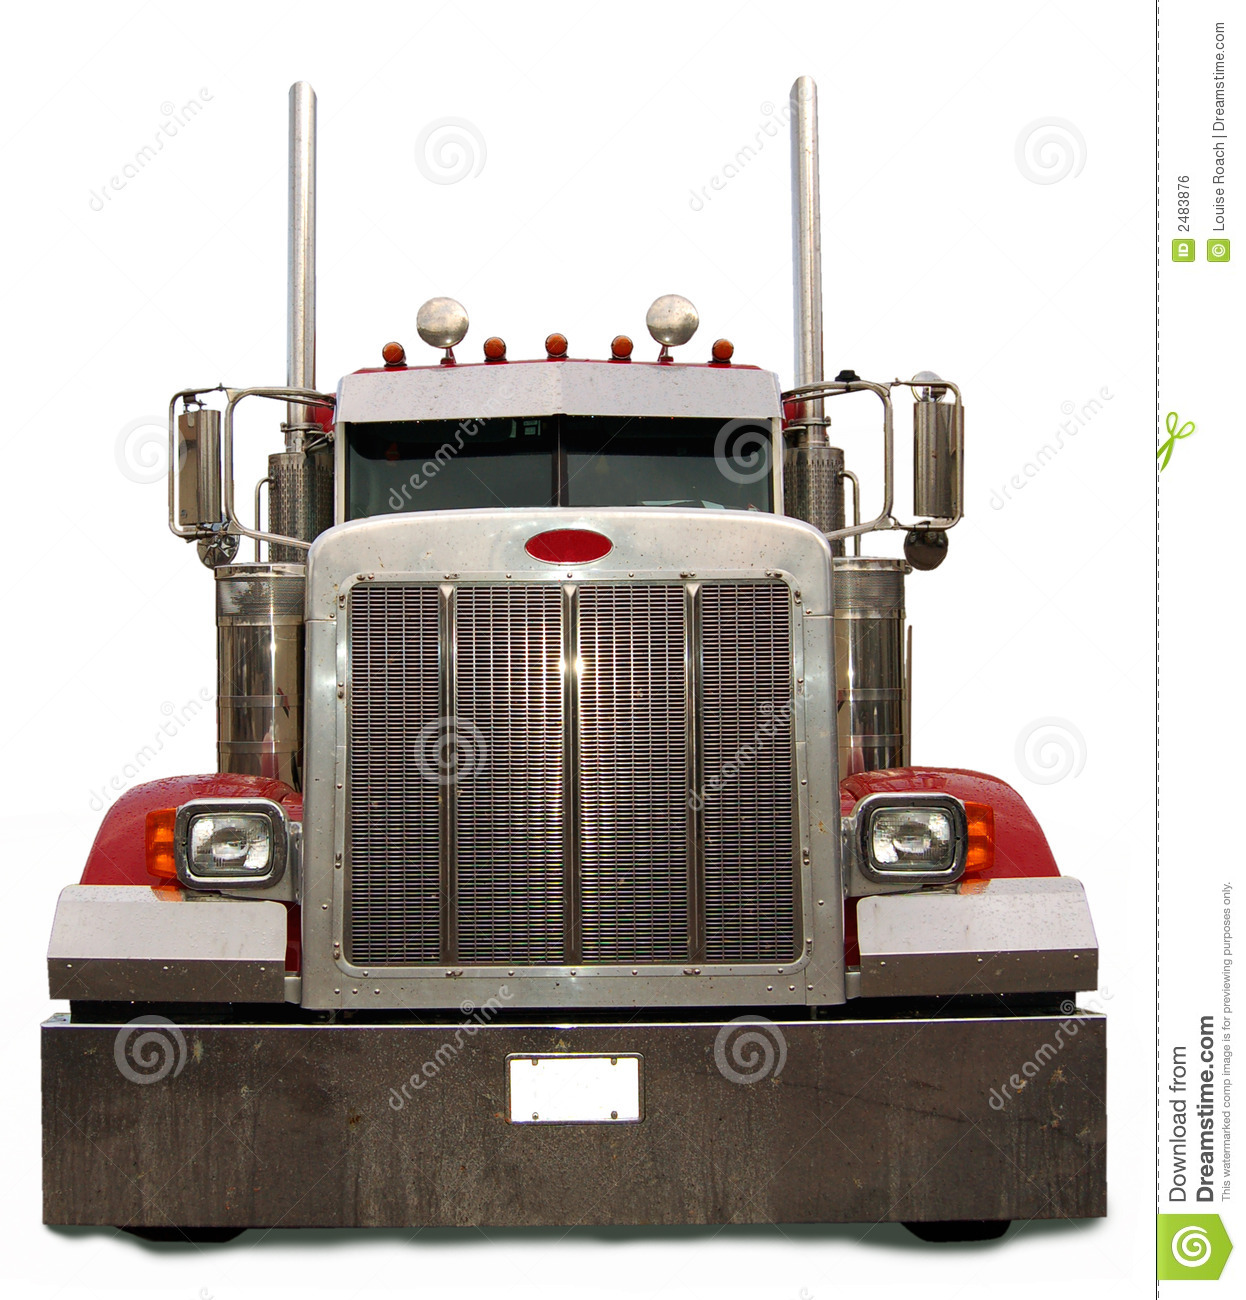 hight resolution of make meme with semi truck grill clipart